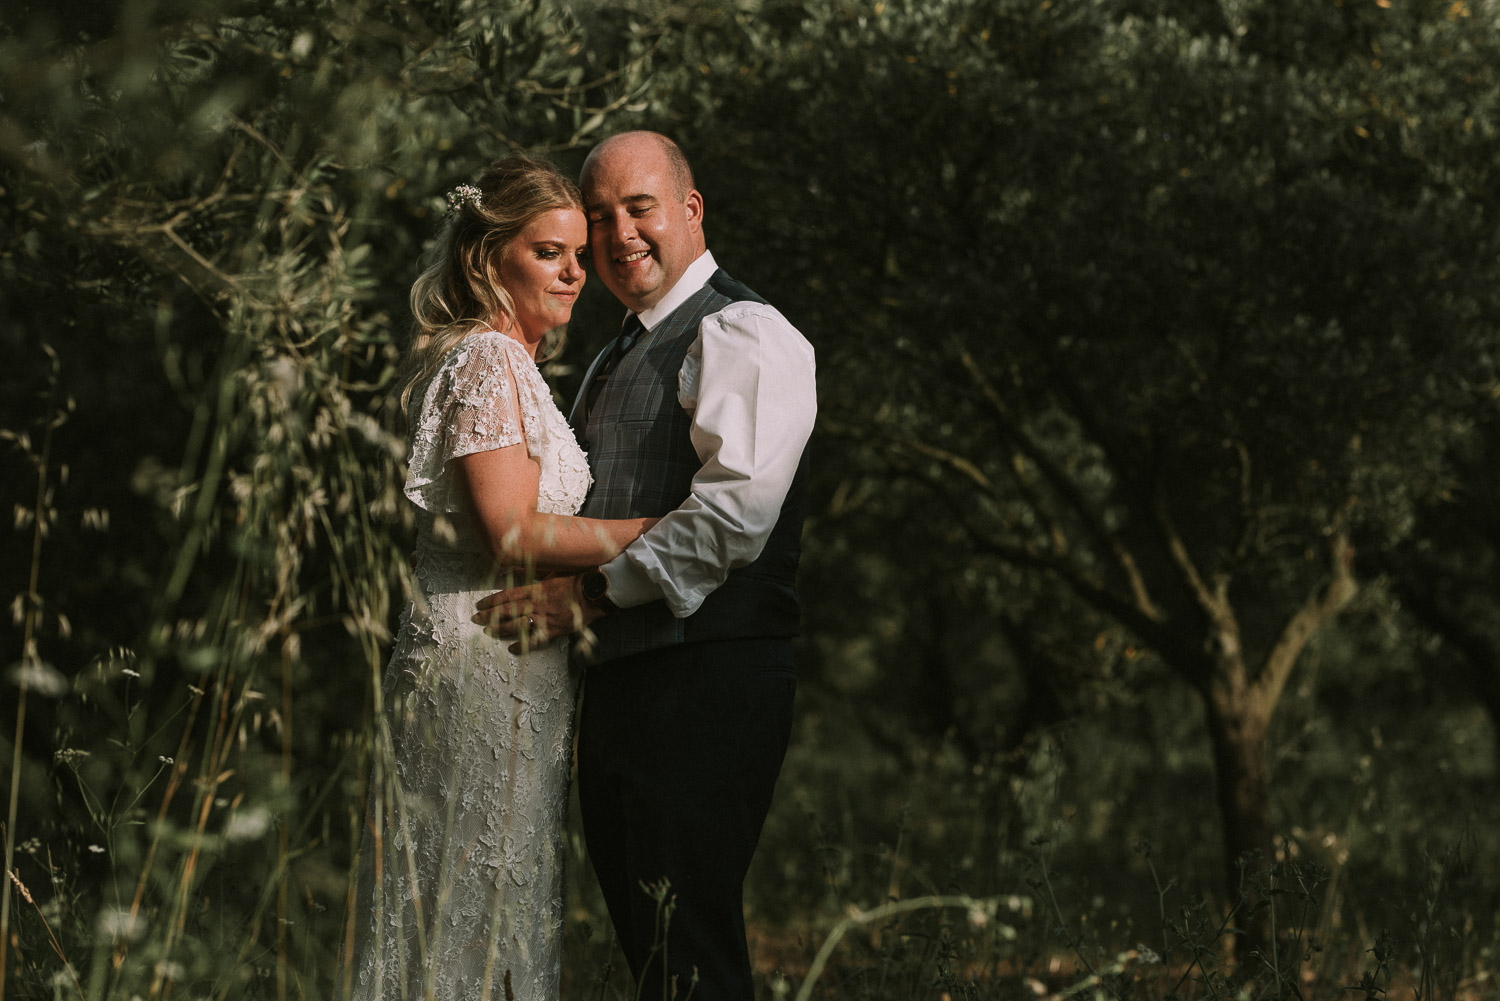 chateau_canet_carcassonne_wedding_katy_webb_photography_france_UK201